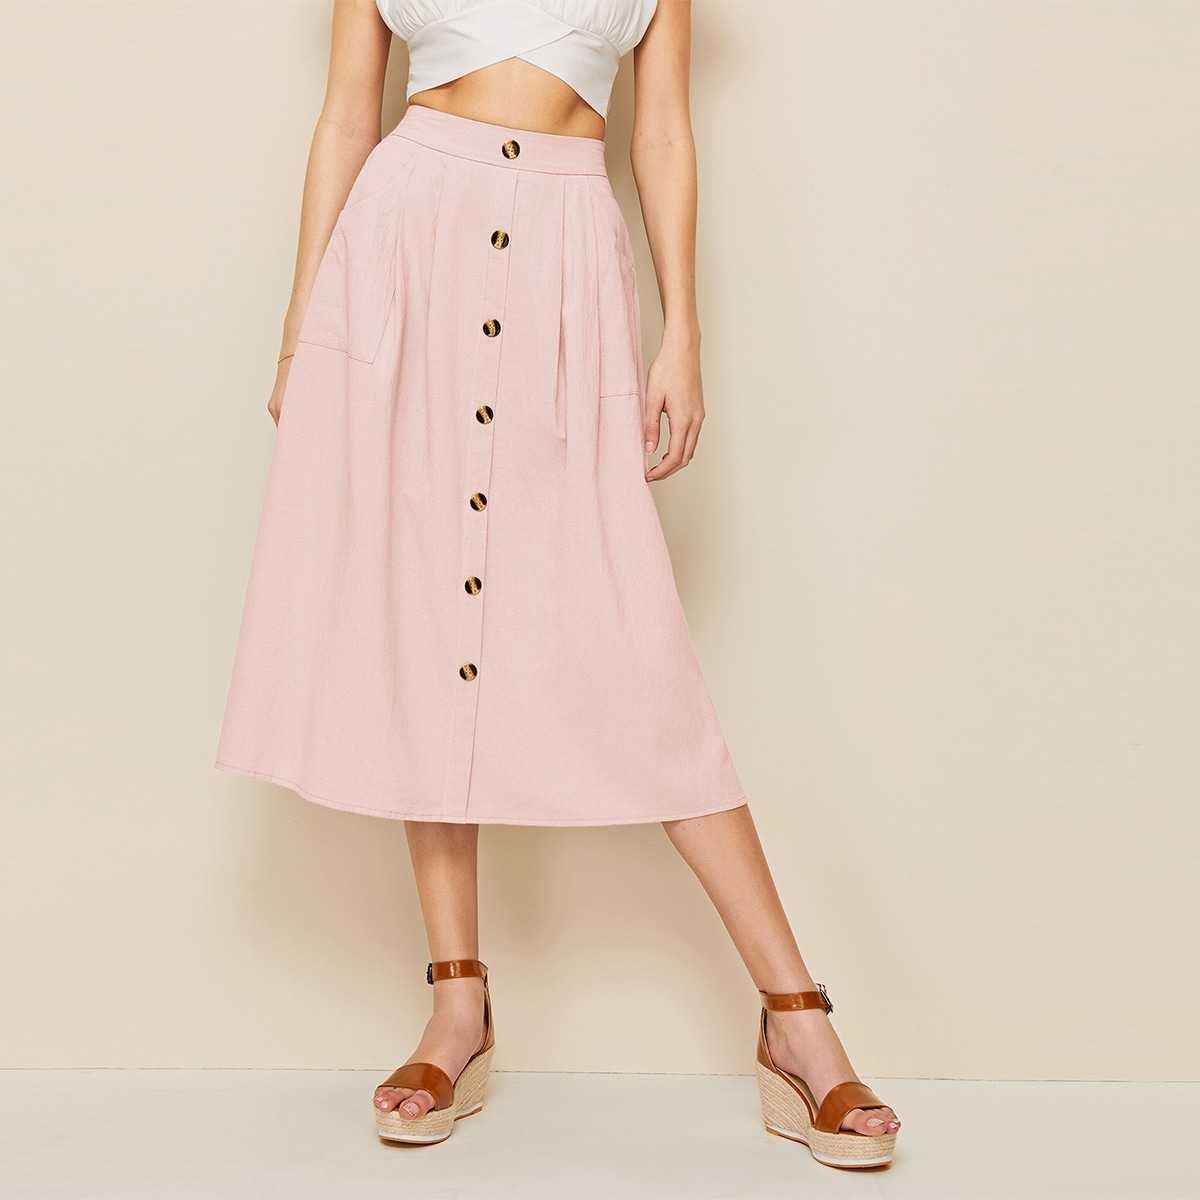 Solid Button Front Dual Pocket Skirt in Pink by ROMWE on GOOFASH